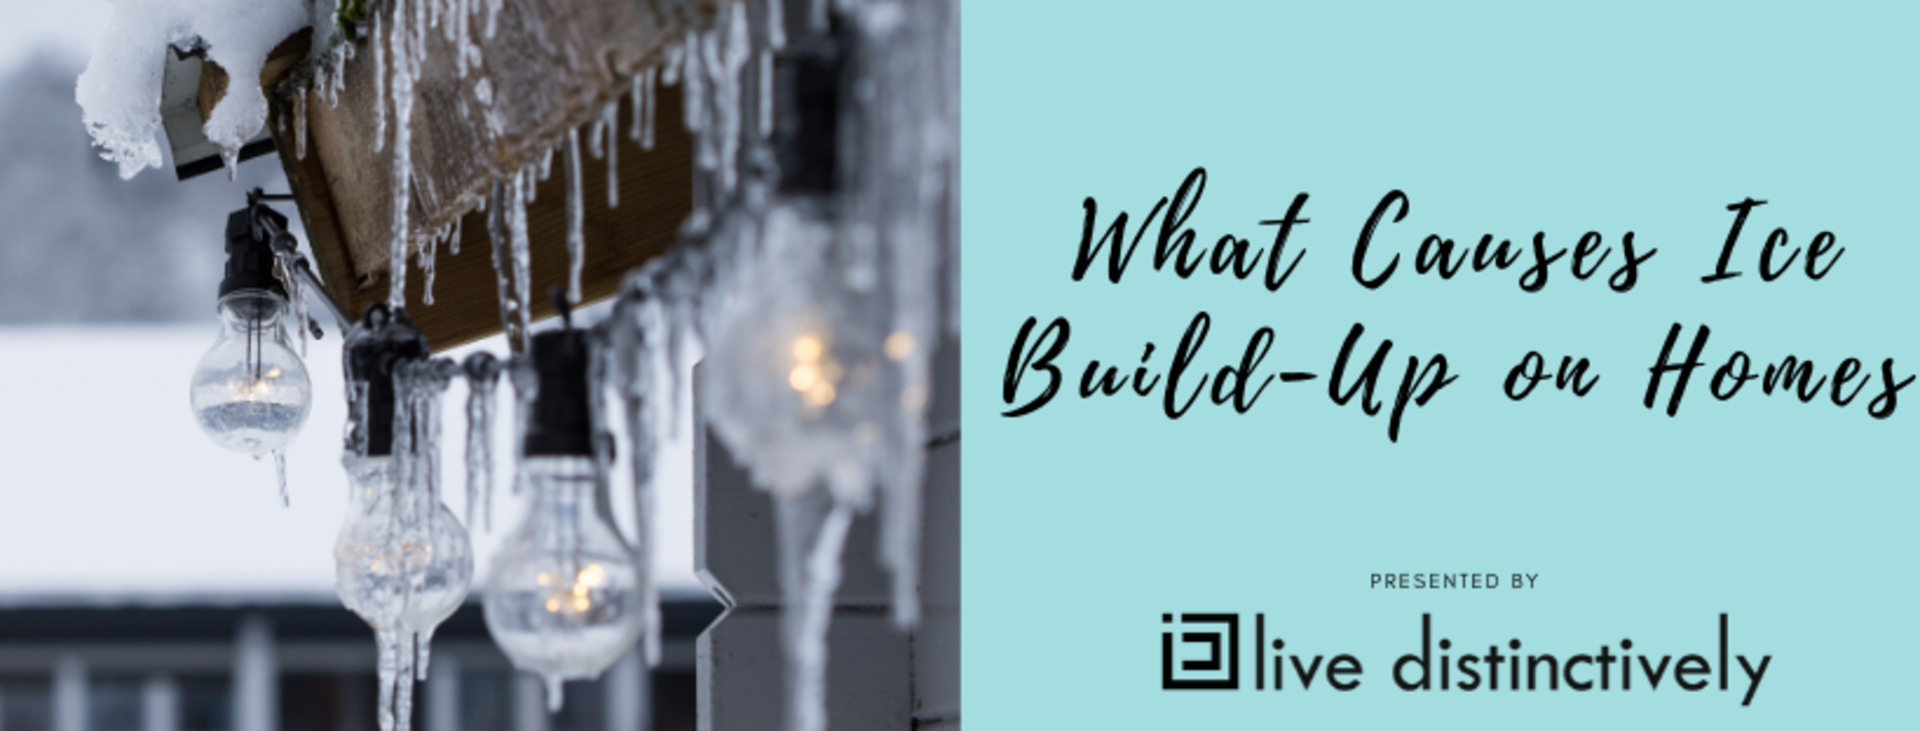 What Causes Ice Build-Up on Homes?